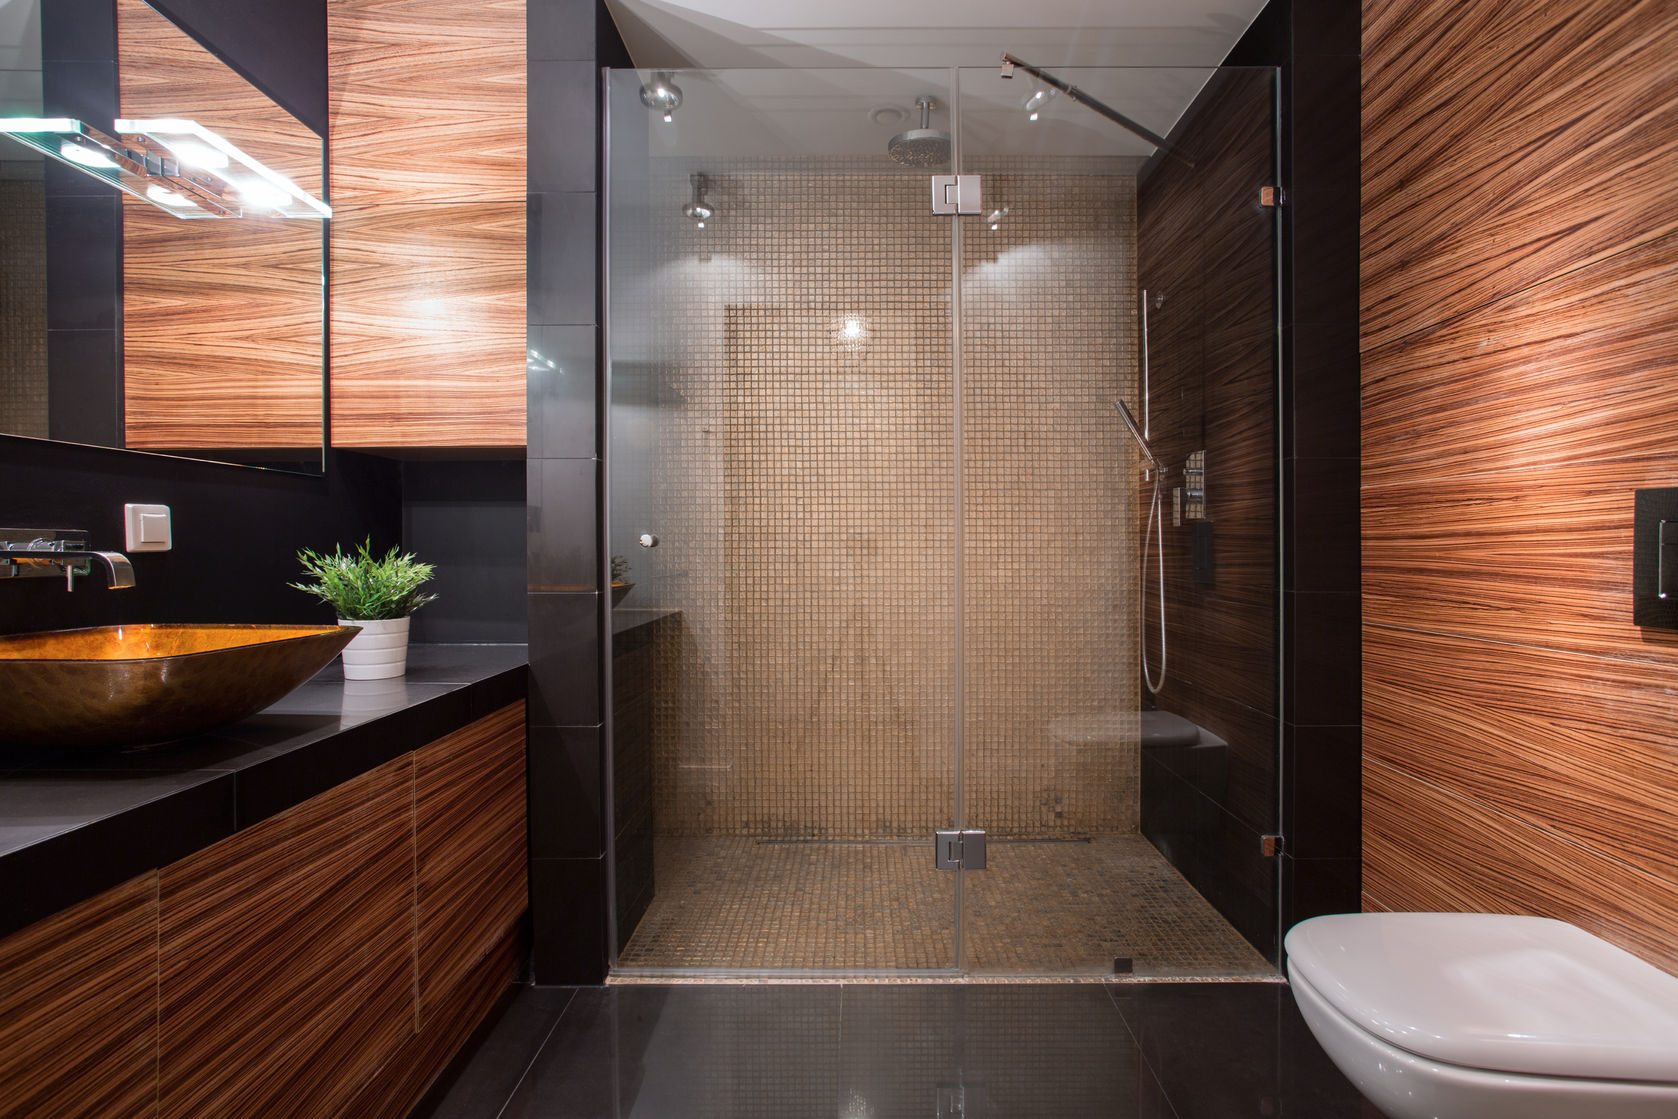 Bathroom Ideas Houzz Fascinating Interesting 30 Bathroom Renovation Ideas Houzz Design Ideas Of Design Ideas